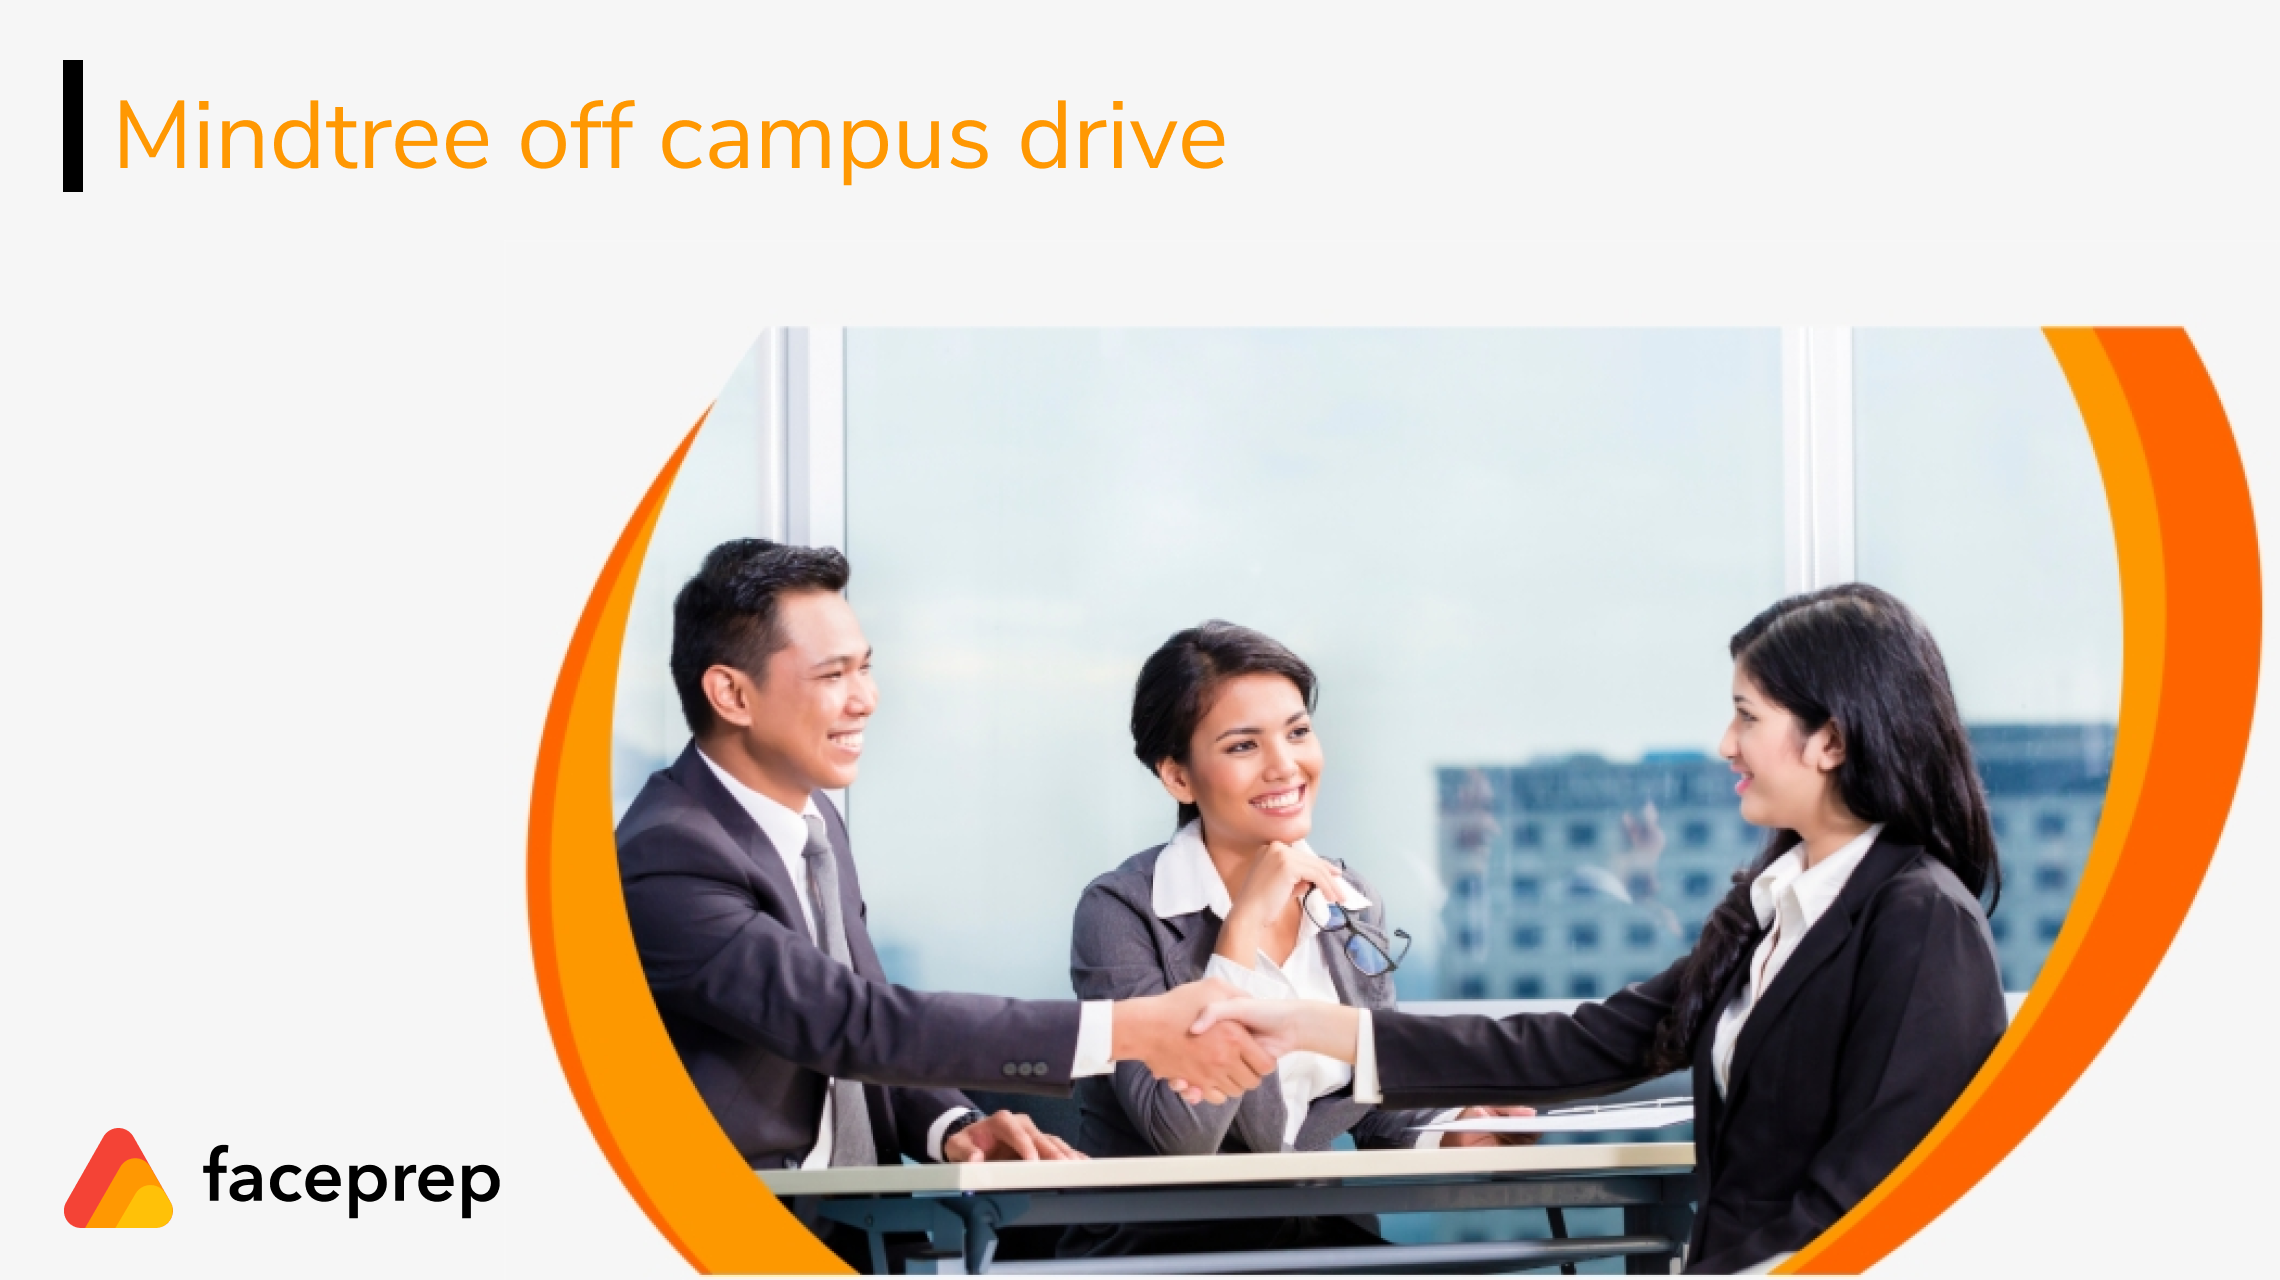 mindtree off campus drive for freshers